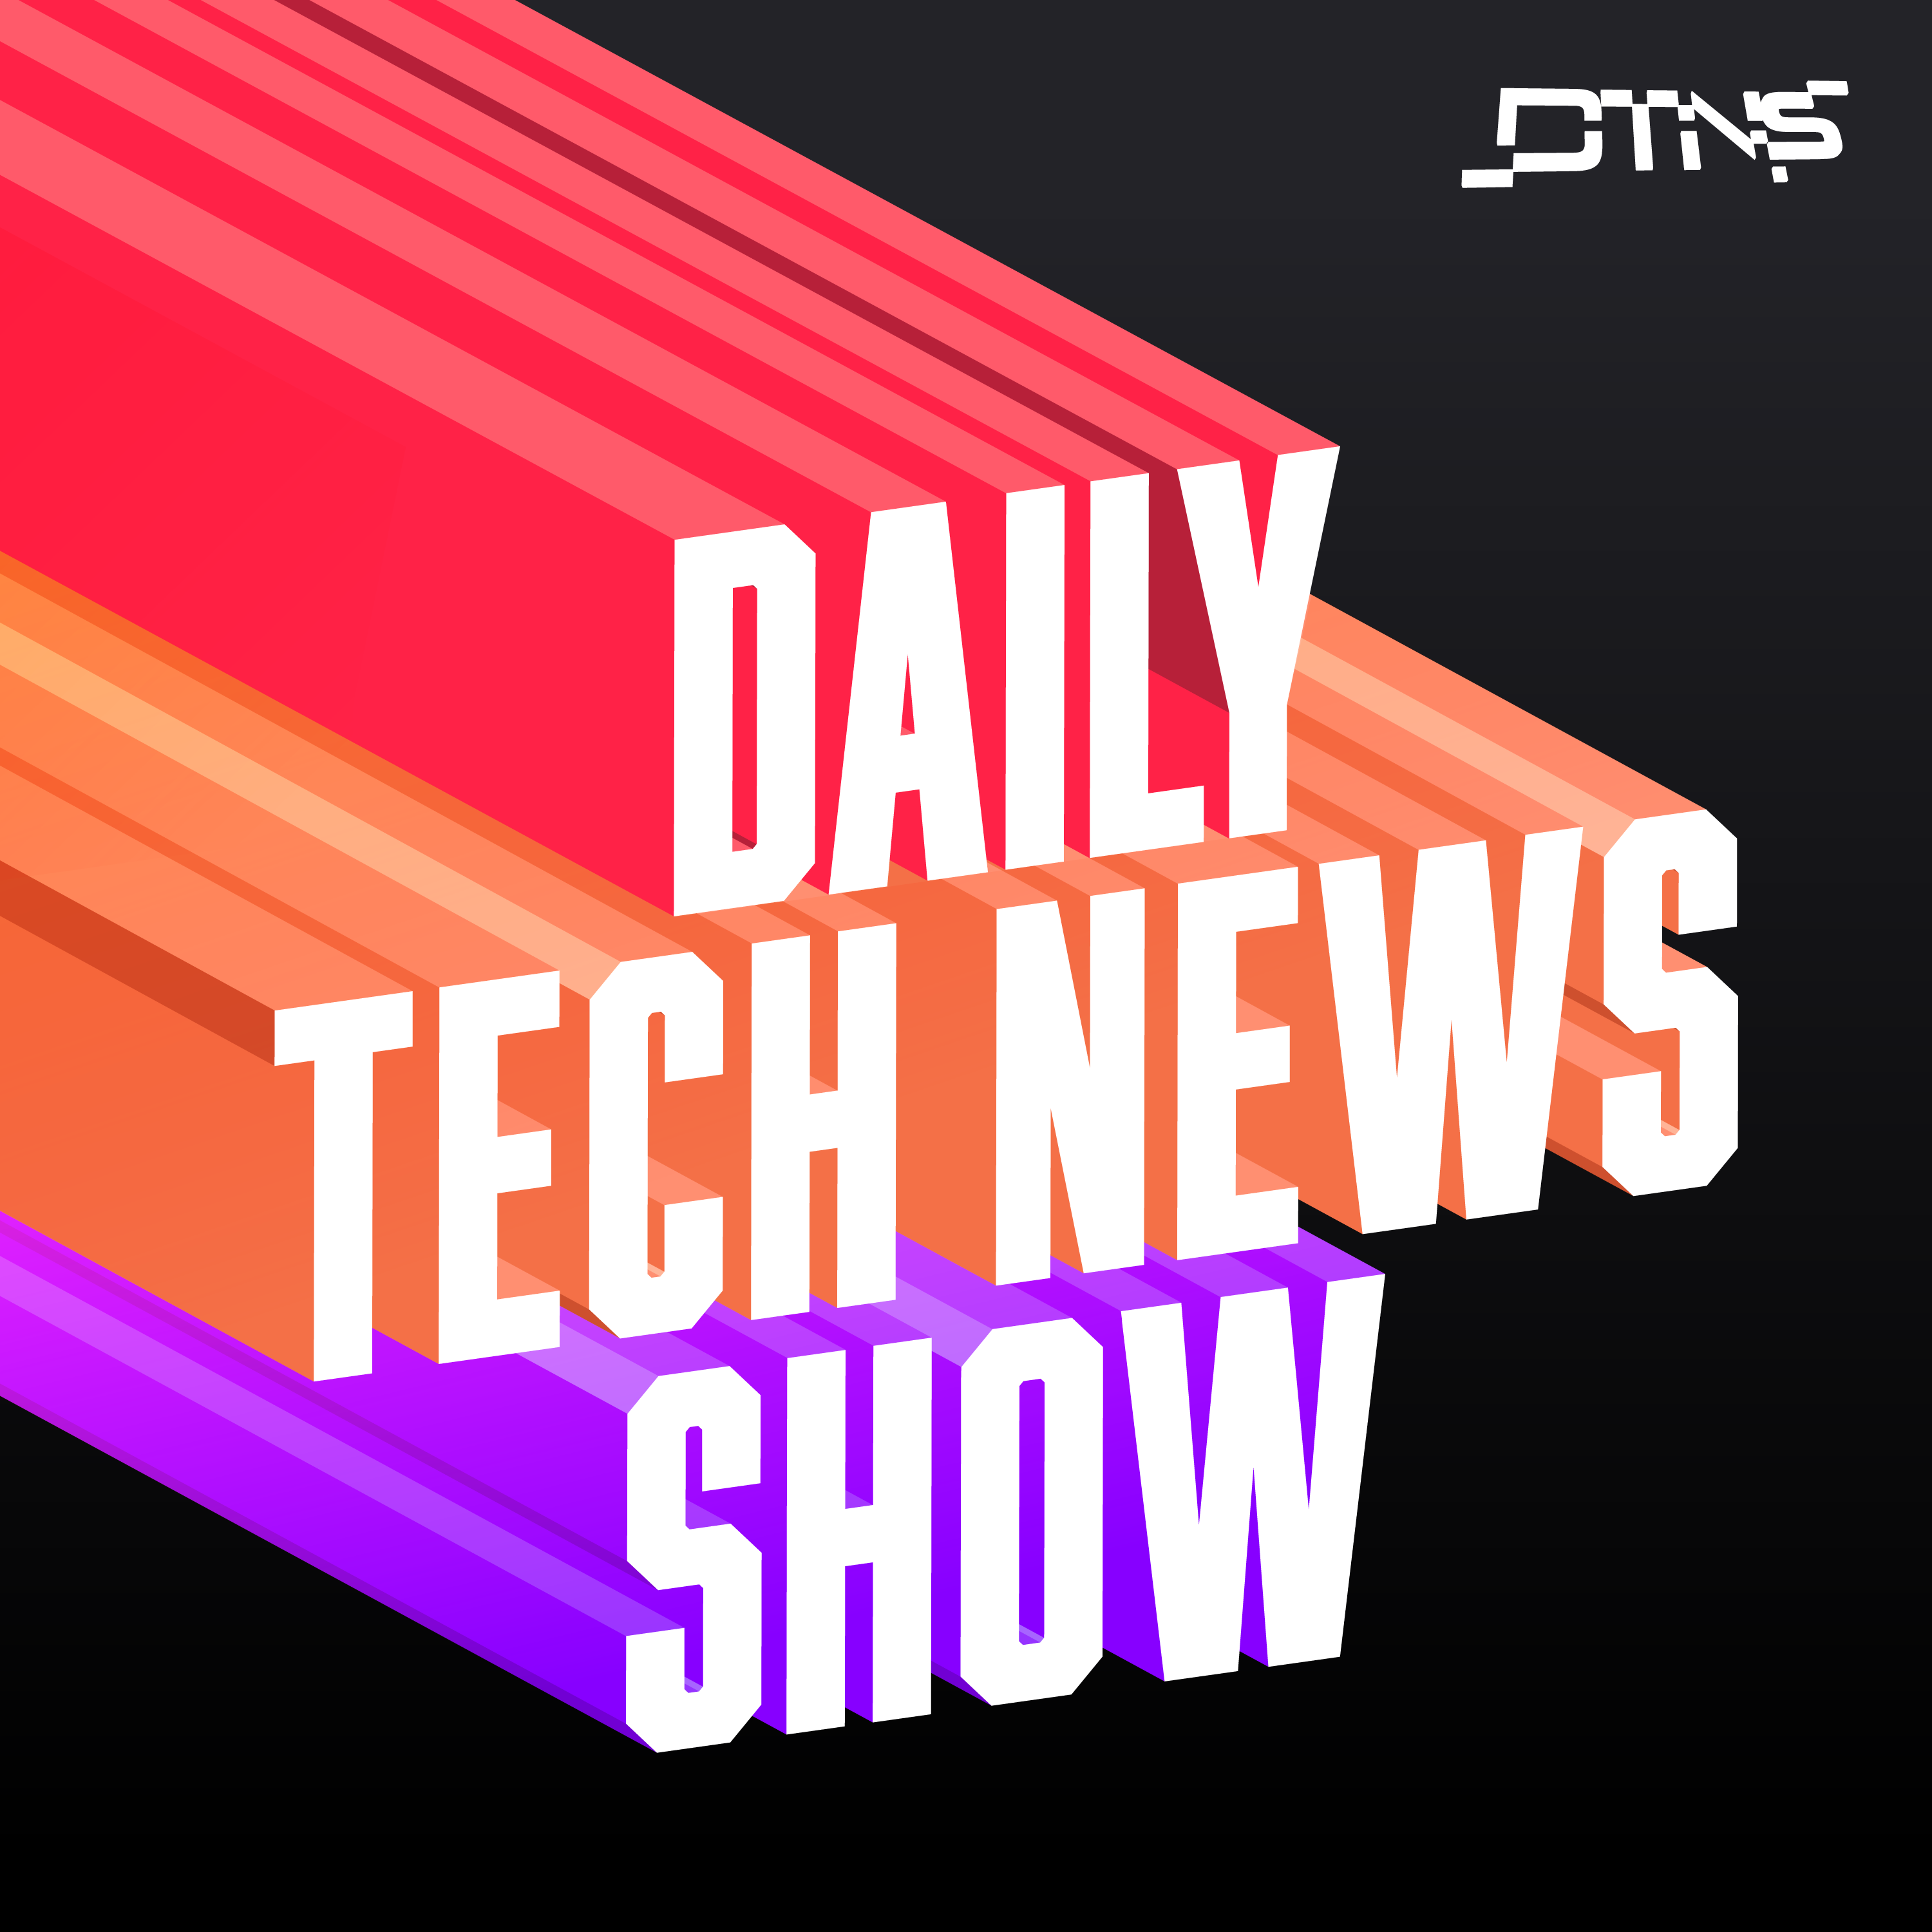 Smart Glasses: Still A Thing! - DTNS 3911